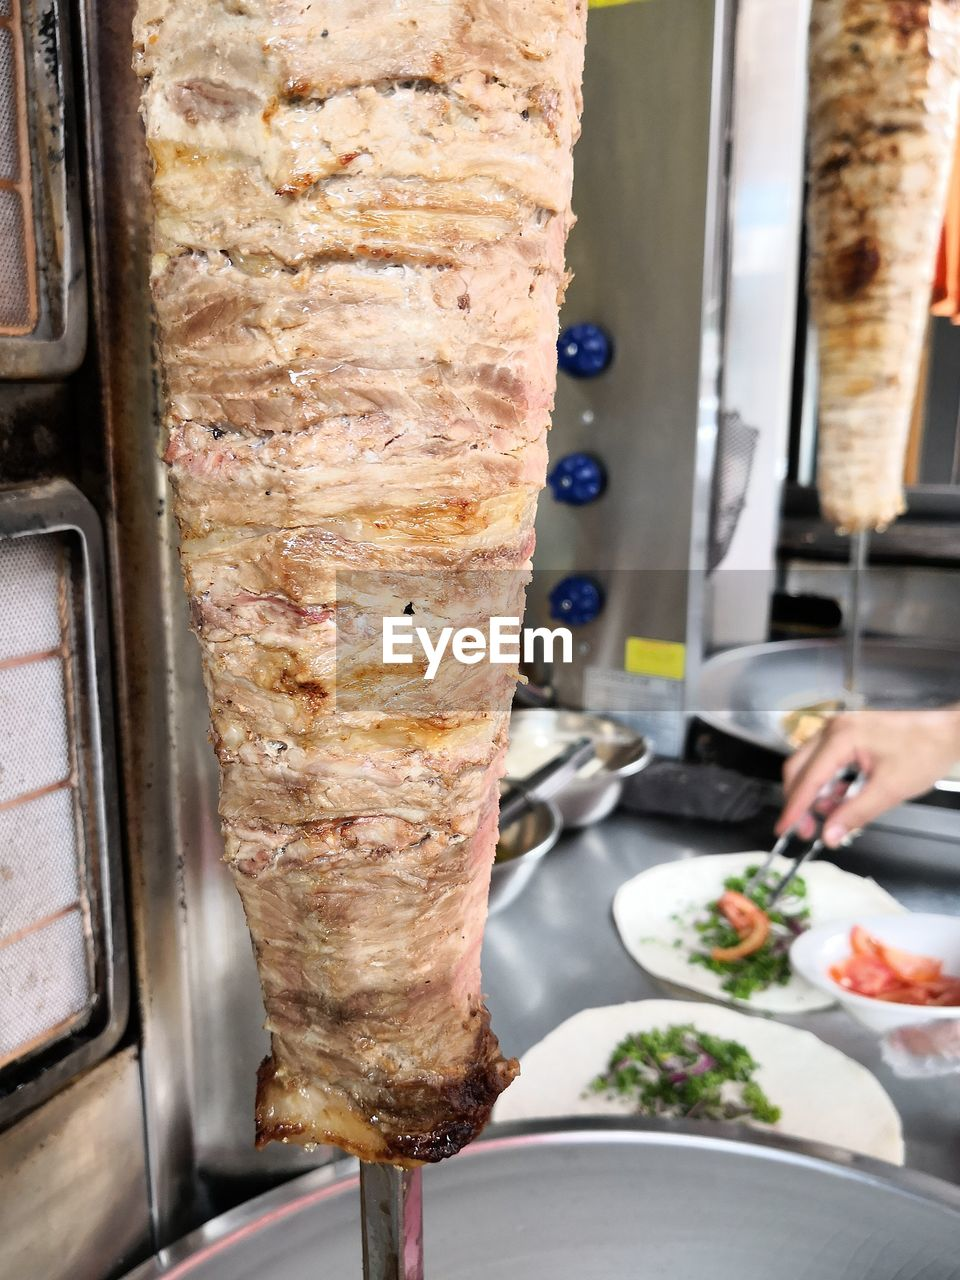 food, food and drink, human hand, preparation, freshness, preparing food, real people, human body part, one person, kitchen, indoors, healthy eating, commercial kitchen, close-up, ready-to-eat, food and drink establishment, day, people